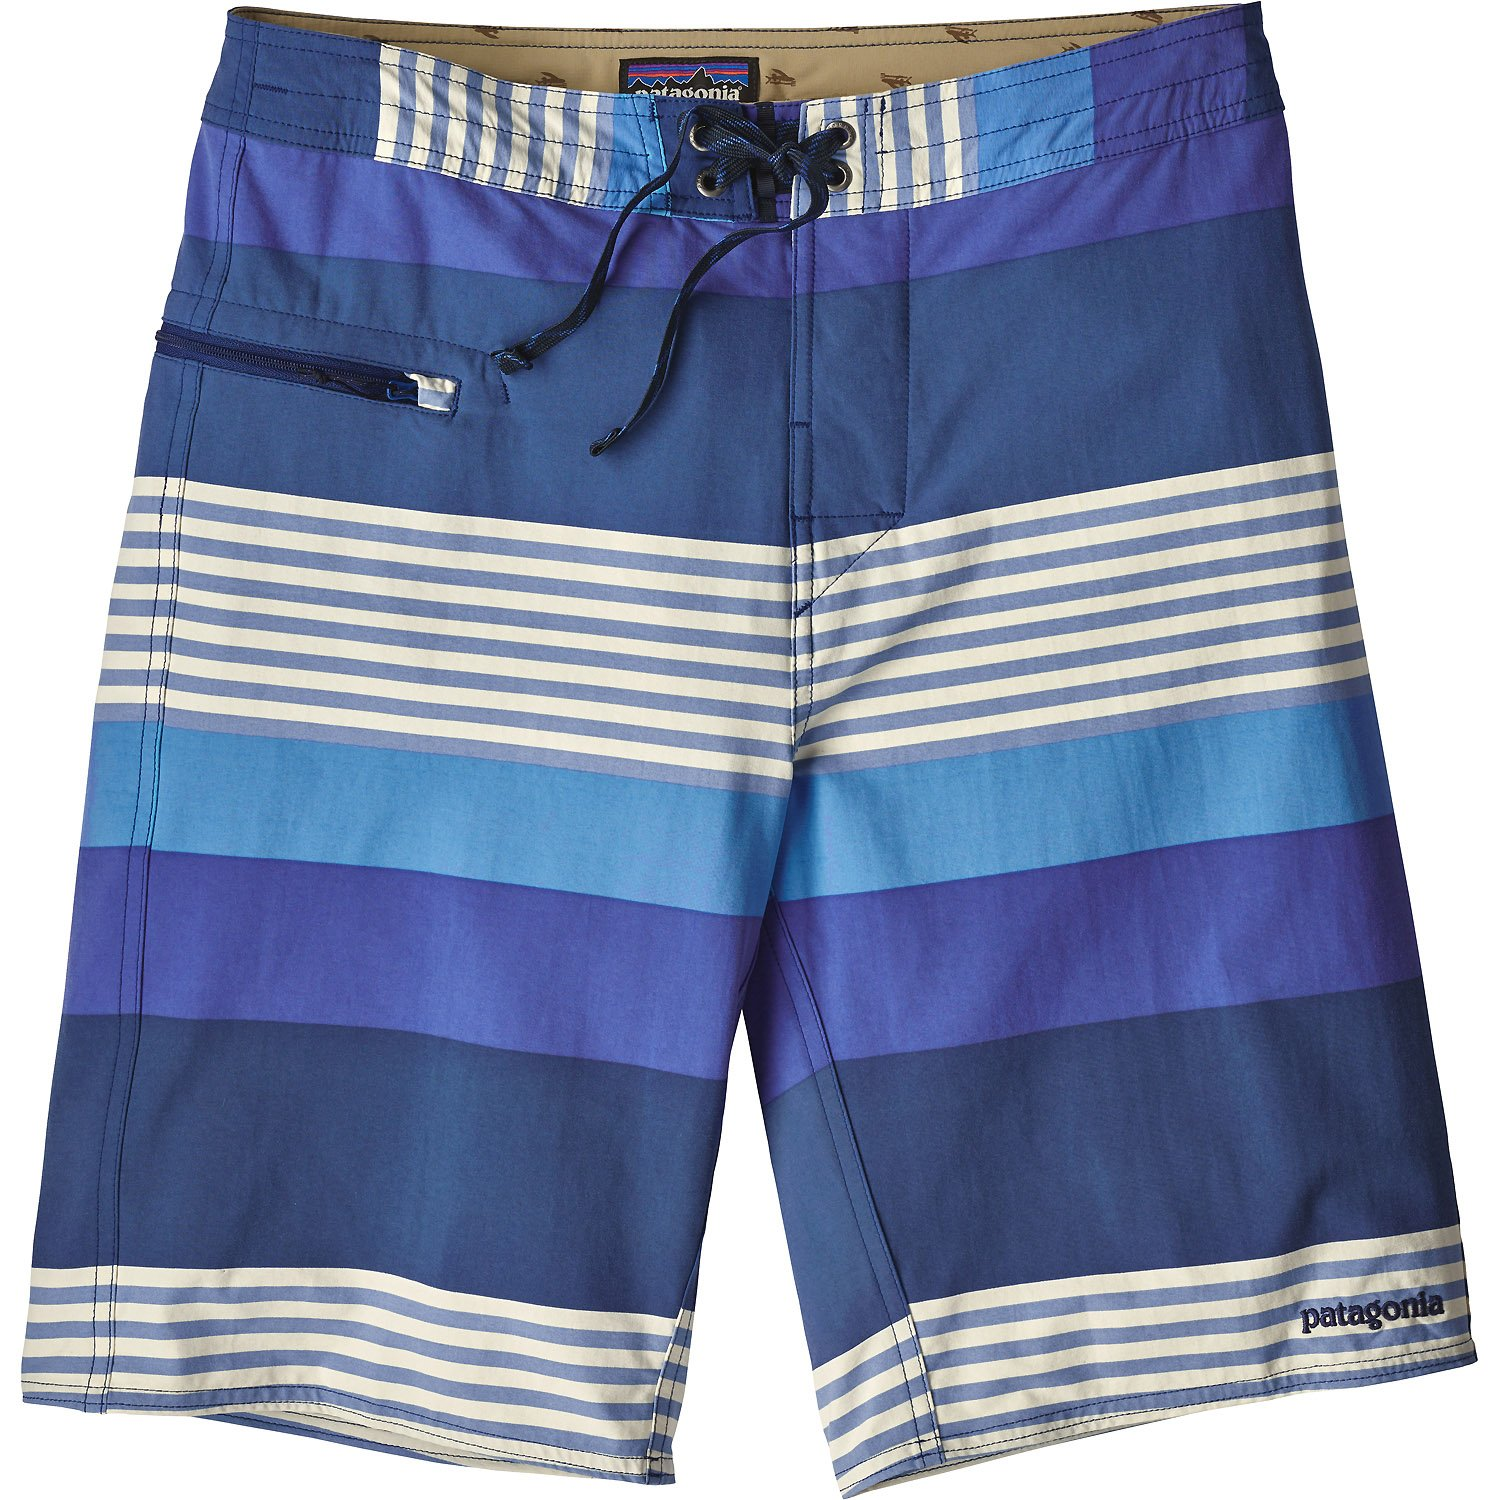 Patagonia M 'S Stretch Herren Boardshorts 21 in, Shorts